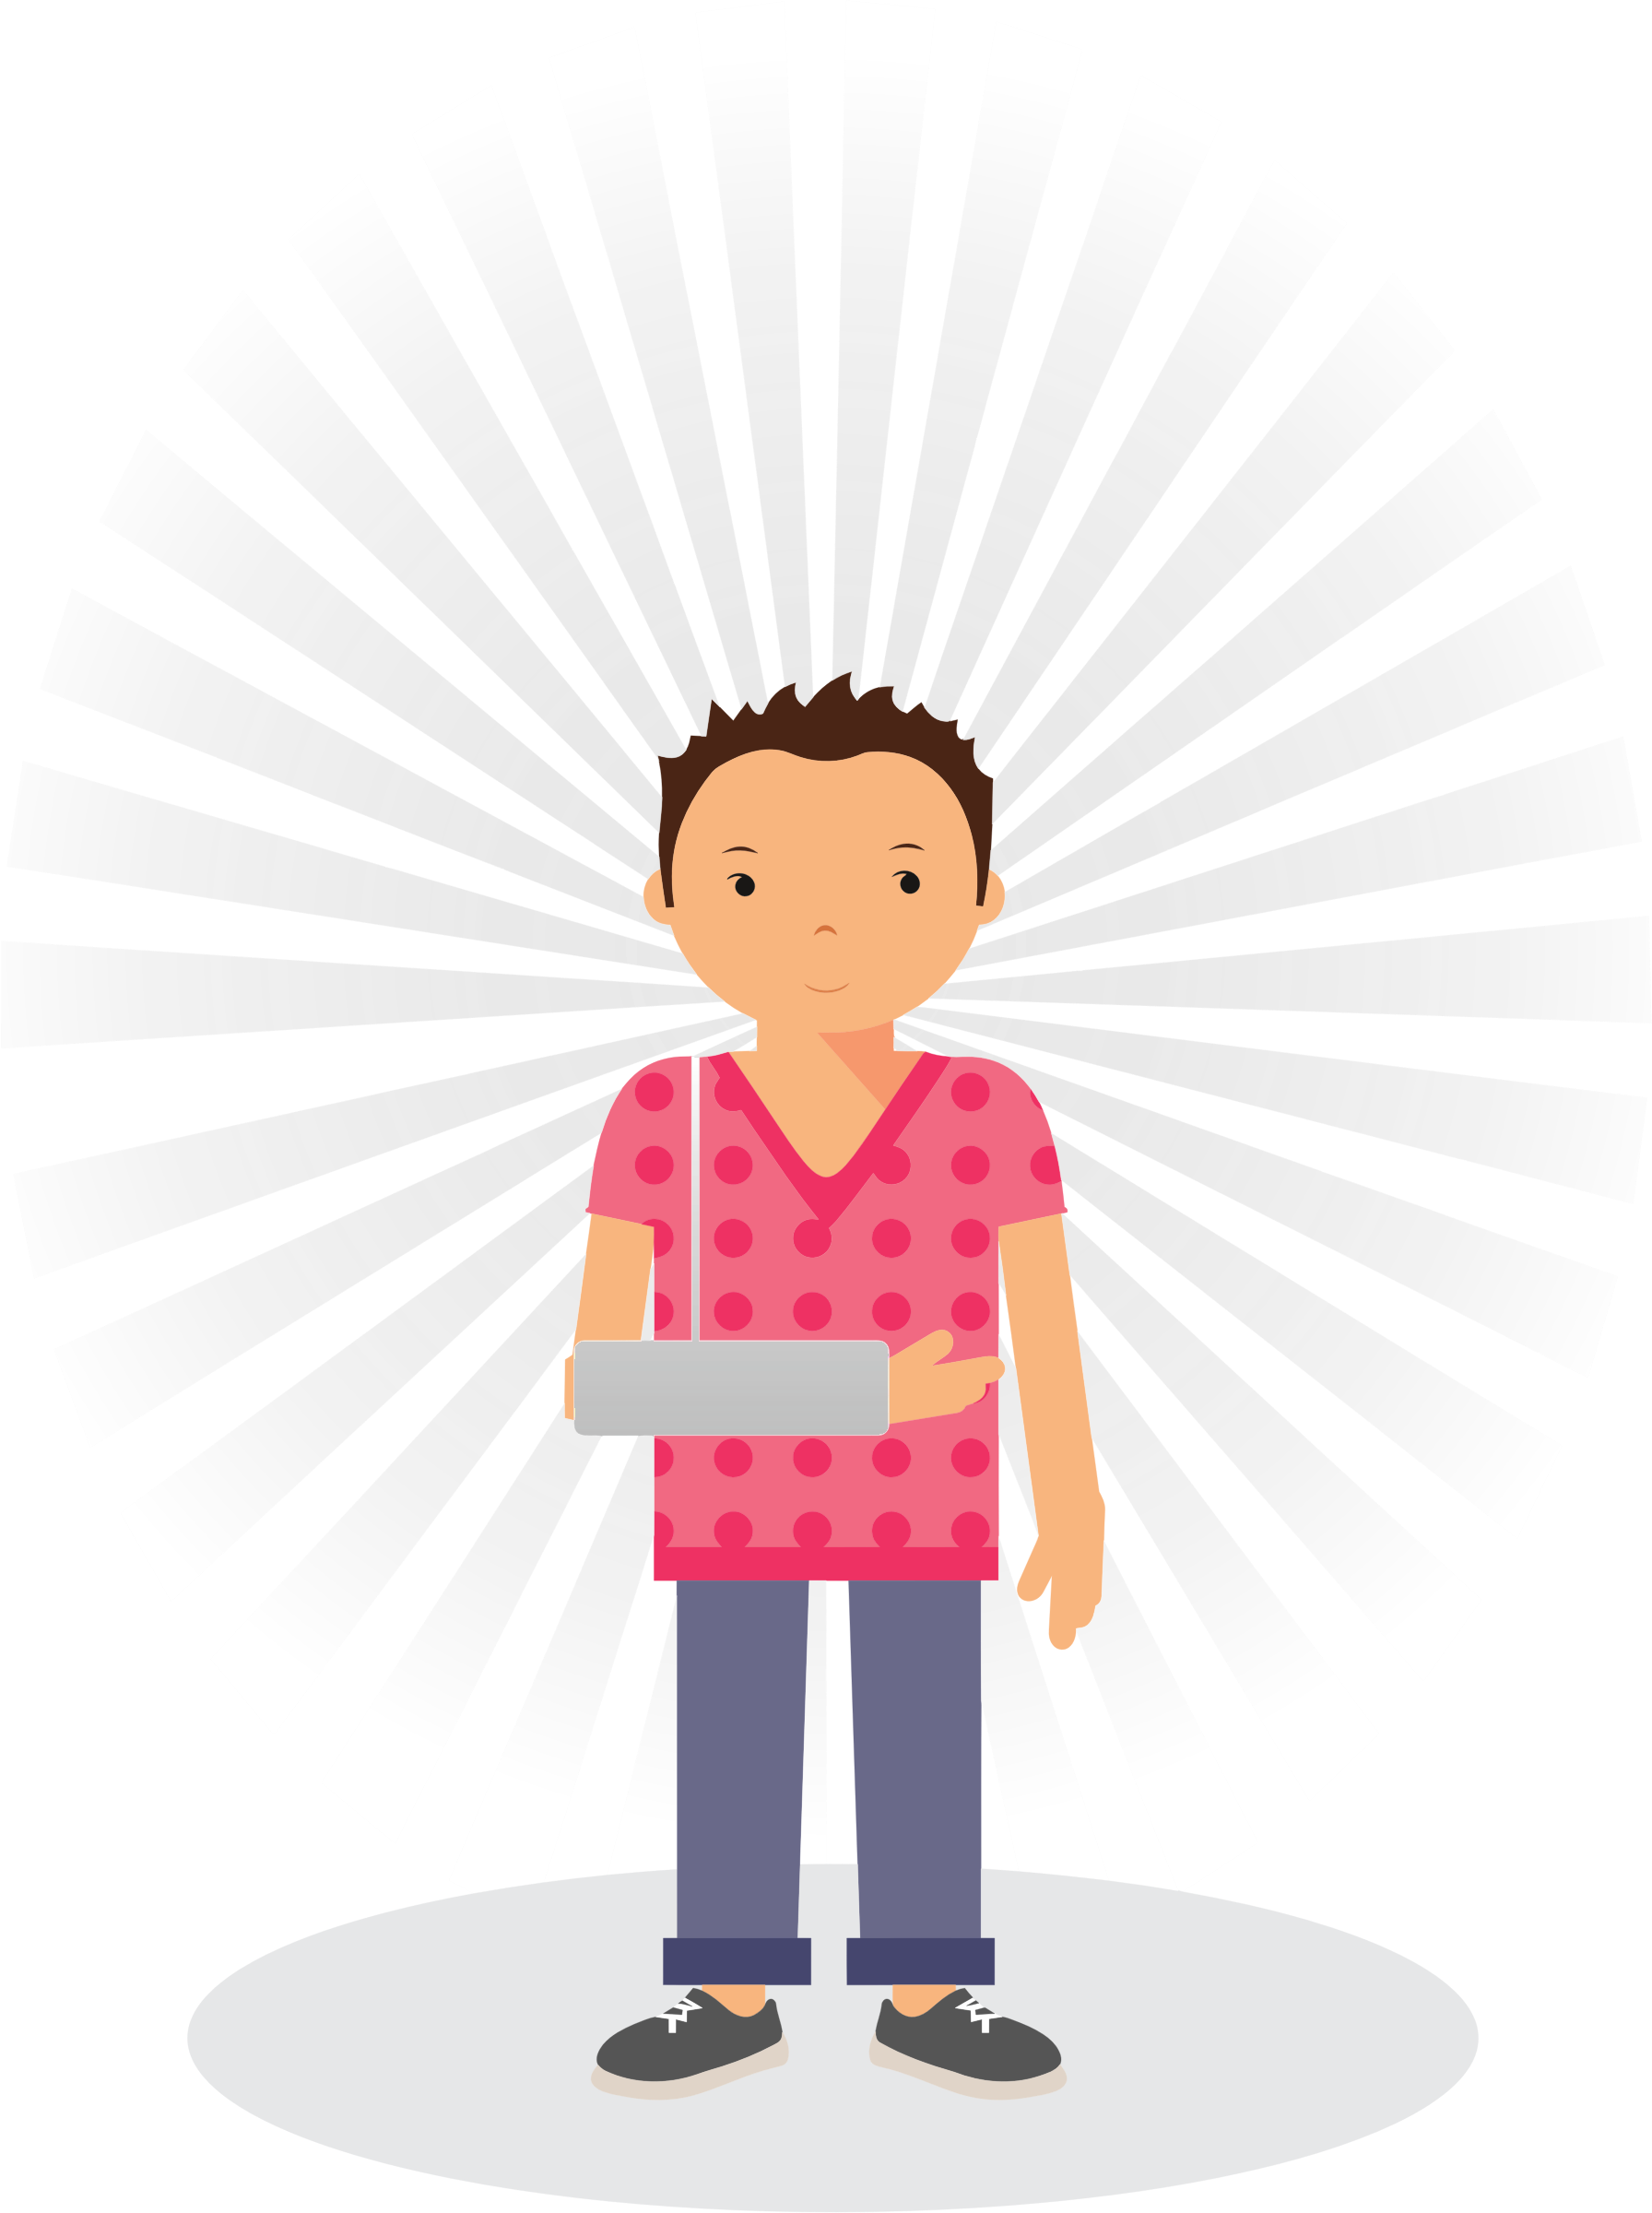 Clipart - Patient With Broken Arm